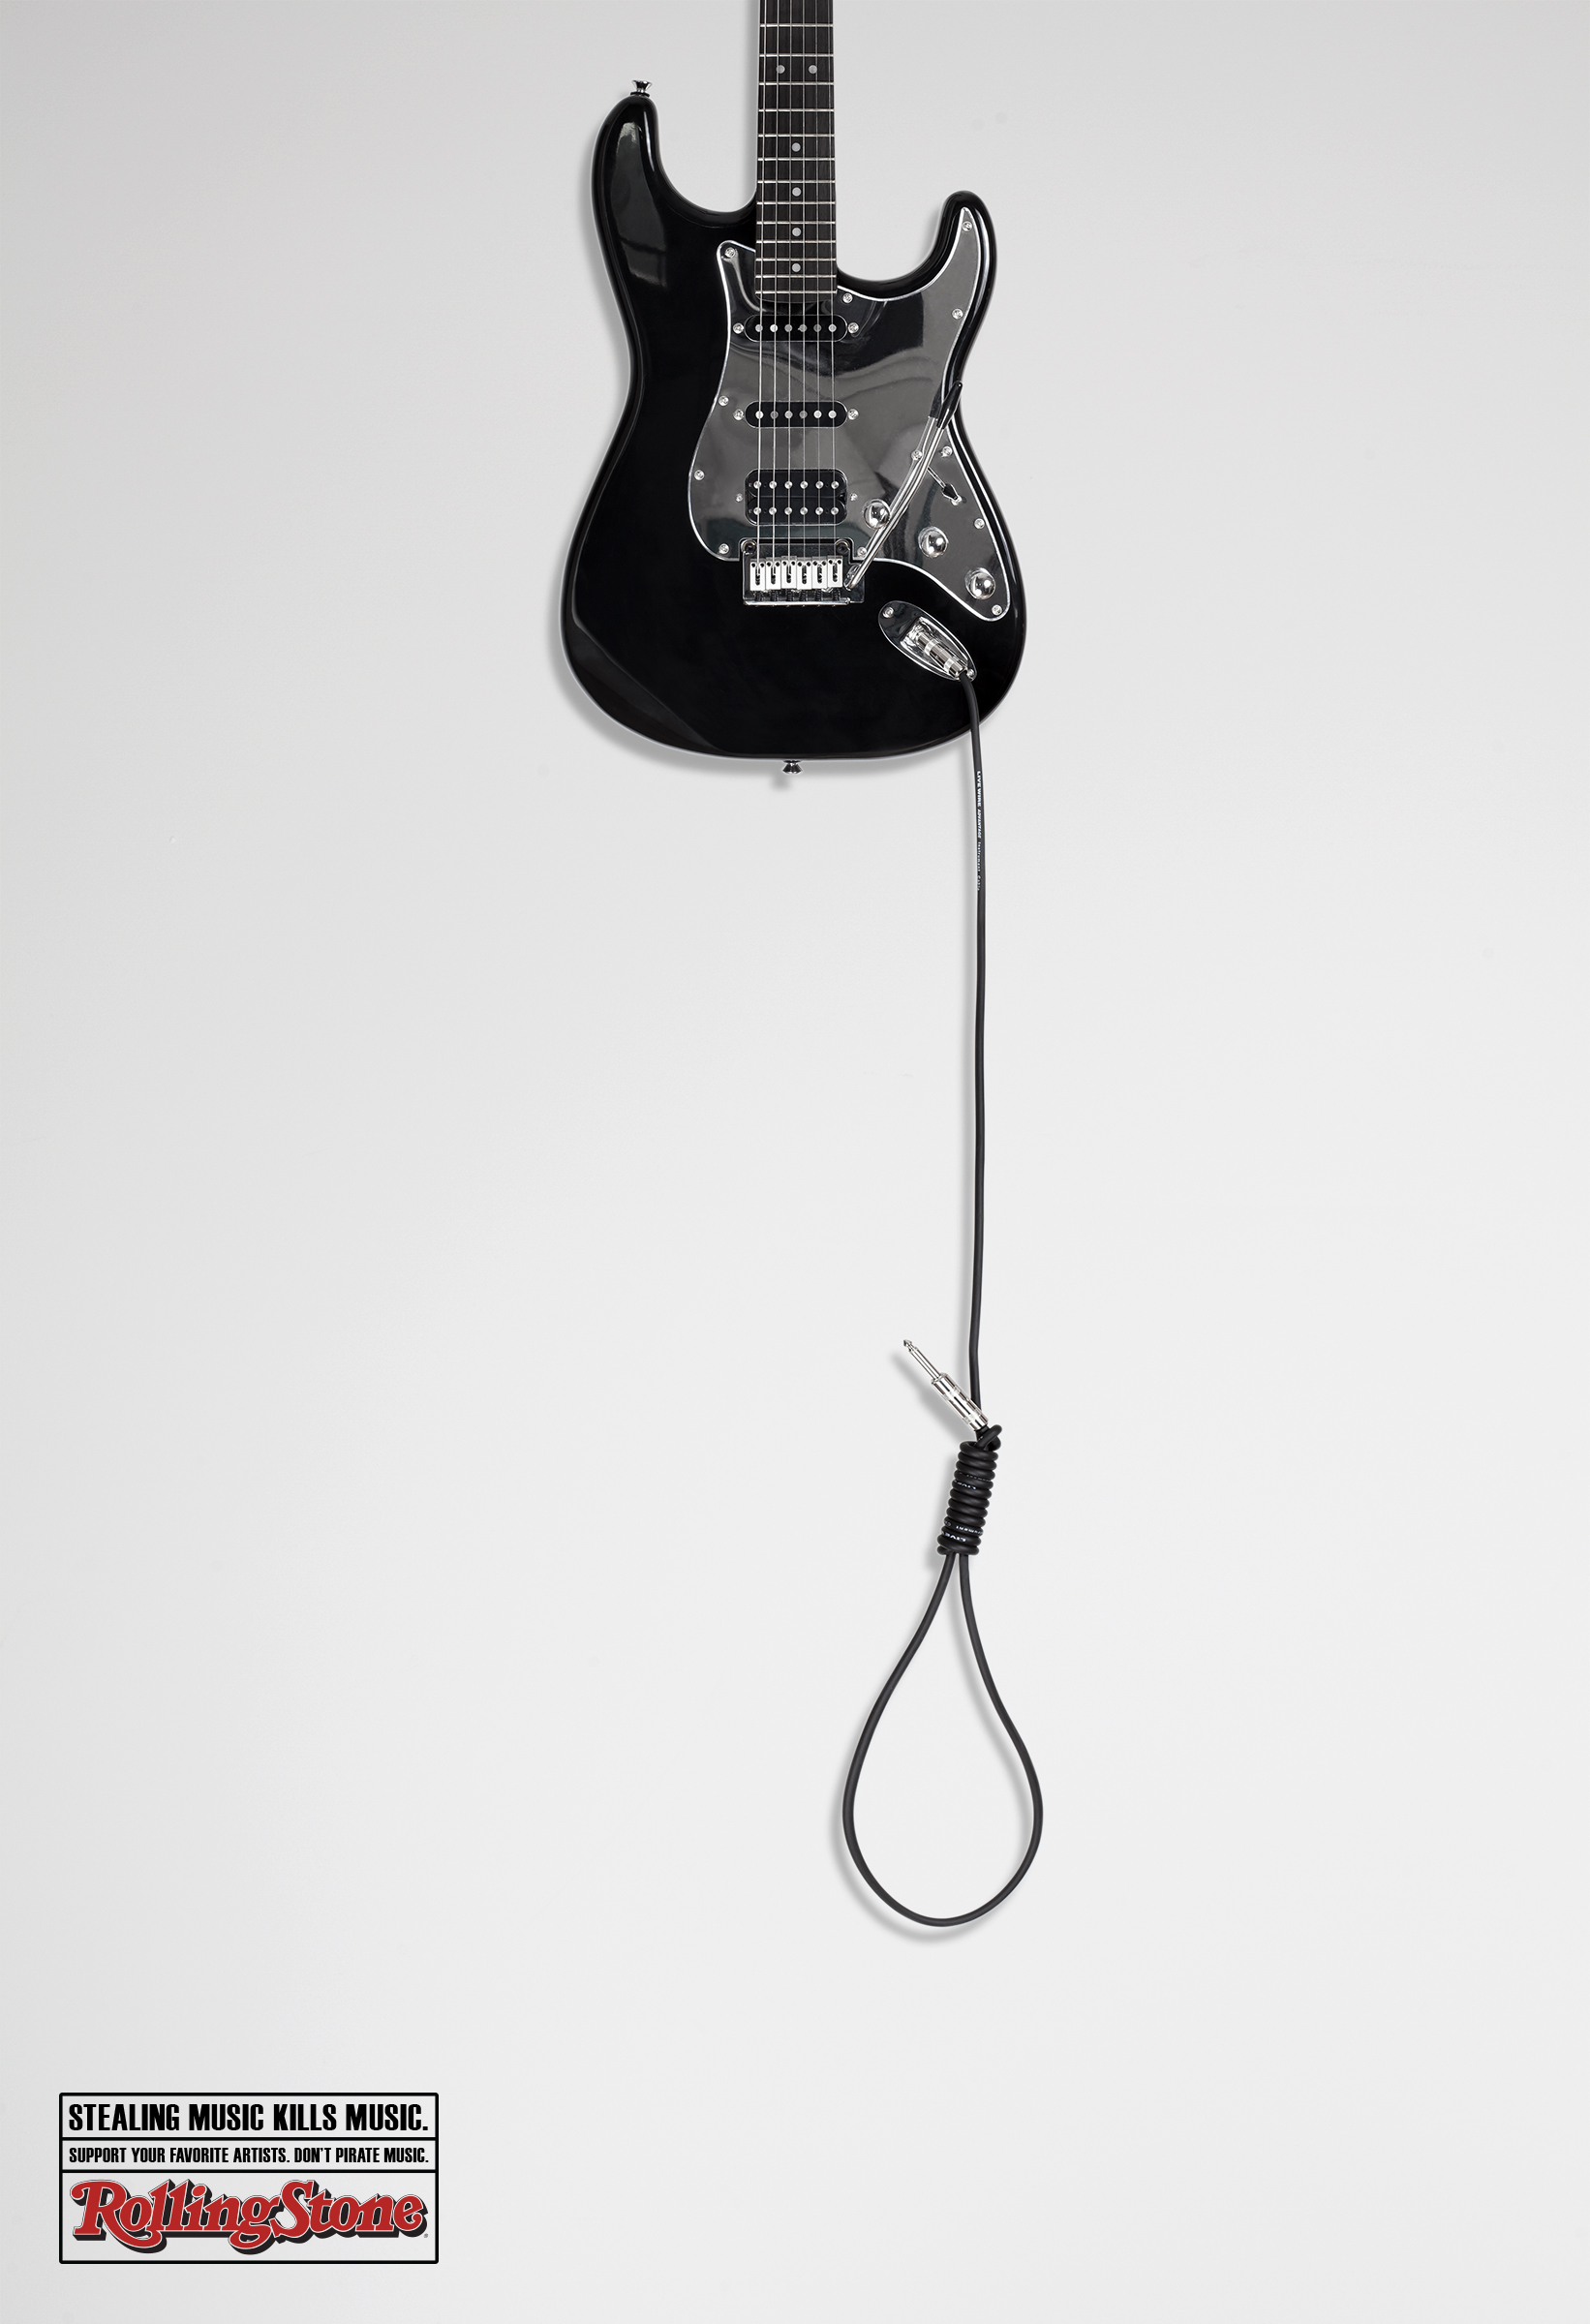 1 ROLLING STONE Music Nooses INTEGRATED.jpg